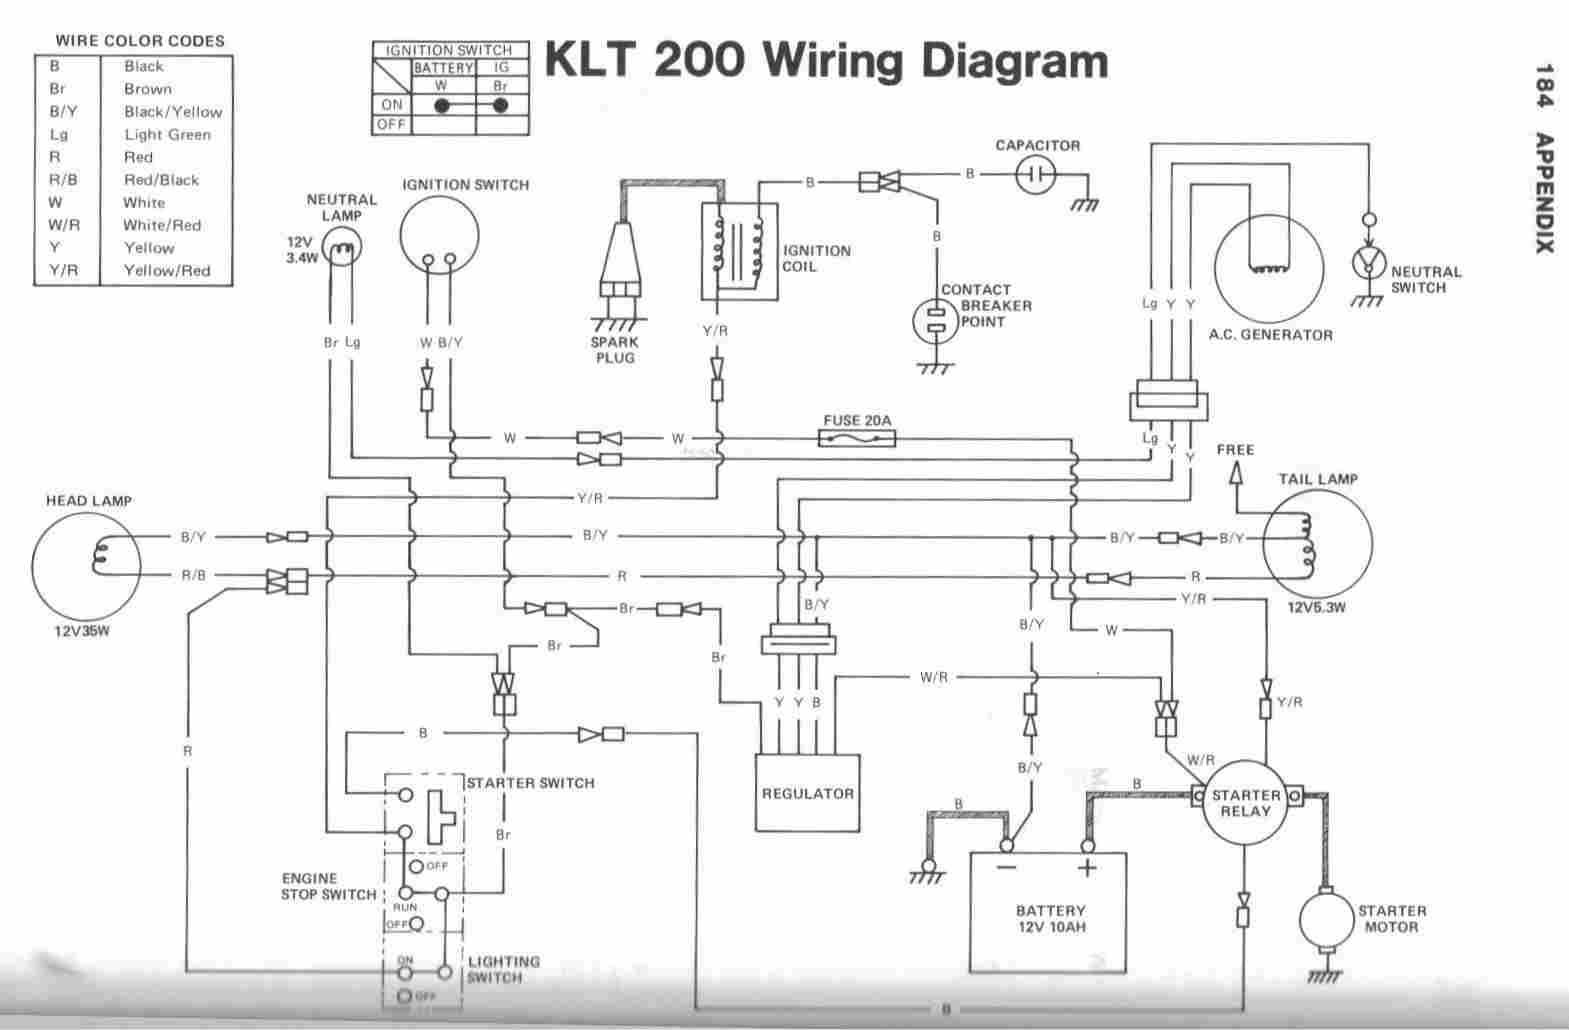 2869034594ce054a636782e5c44b61b4 wiring diagrams \u2022 woorishop co  at bayanpartner.co